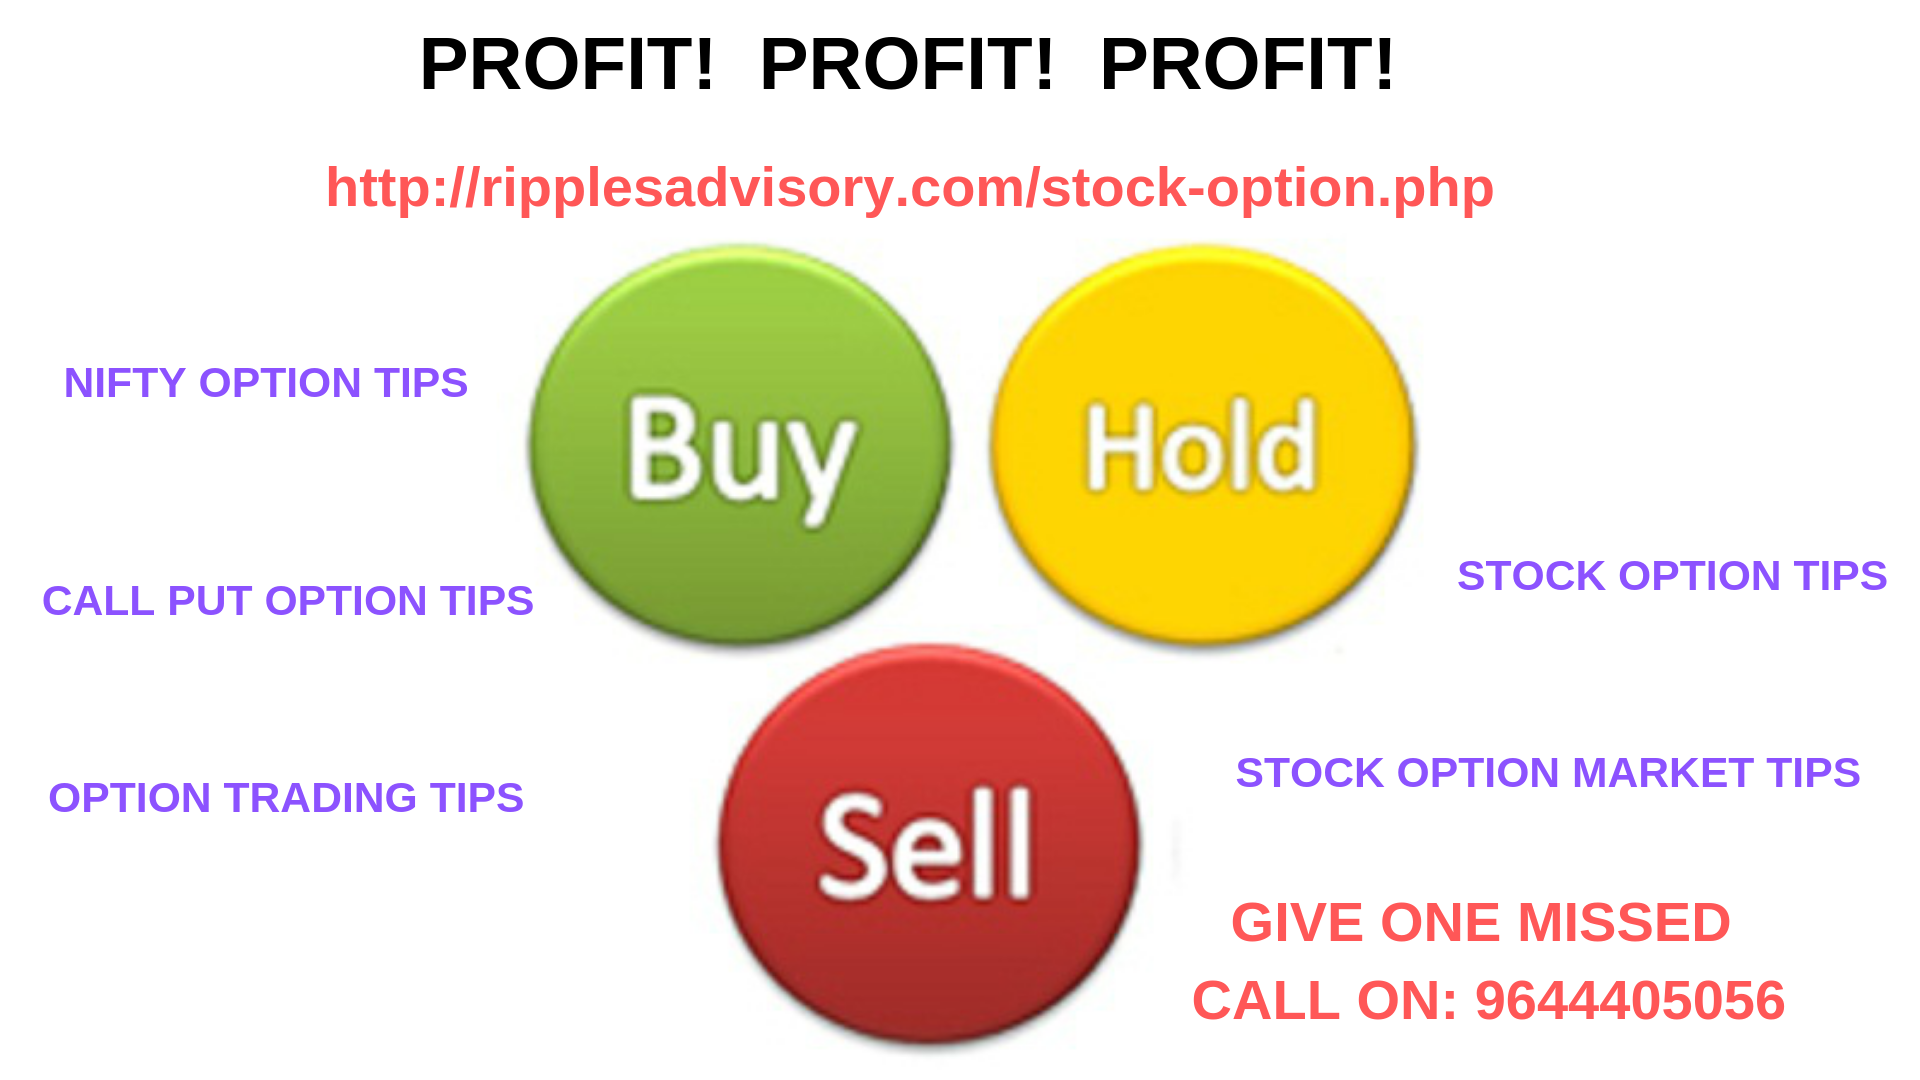 Top 10 Website to Get Daily Intraday Tips - Trading Blogs